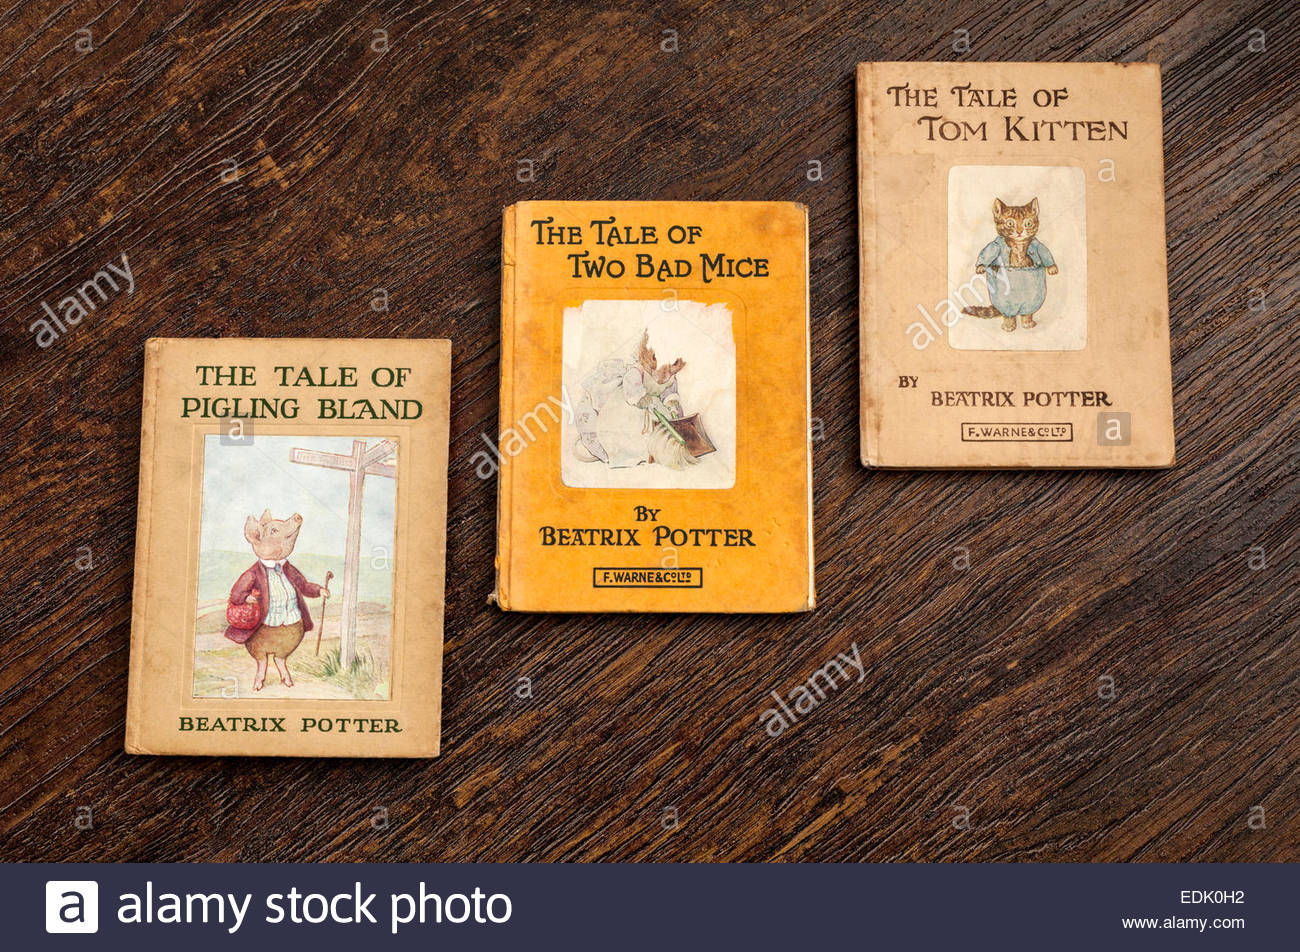 Beatrix Potter Books - The Tale of Pigling Bland, The Tale of Two Bad Mice, The Tale of Tom Kitten - Stock Image